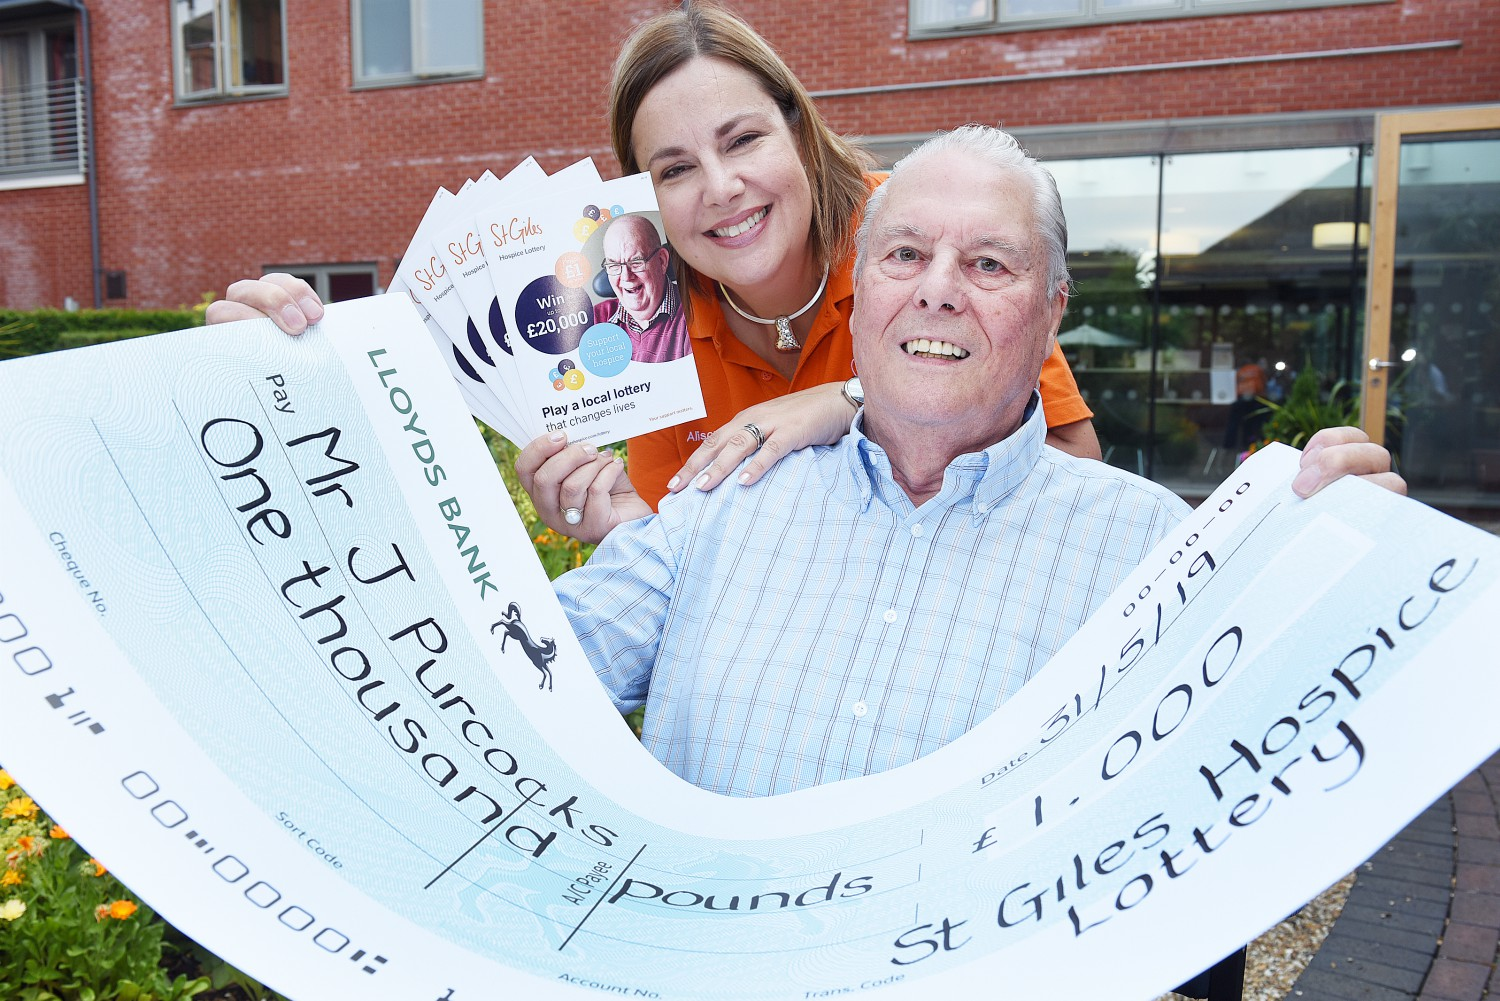 Pensioner hits £1,000 jackpot in St Giles Hospice Lottery draw